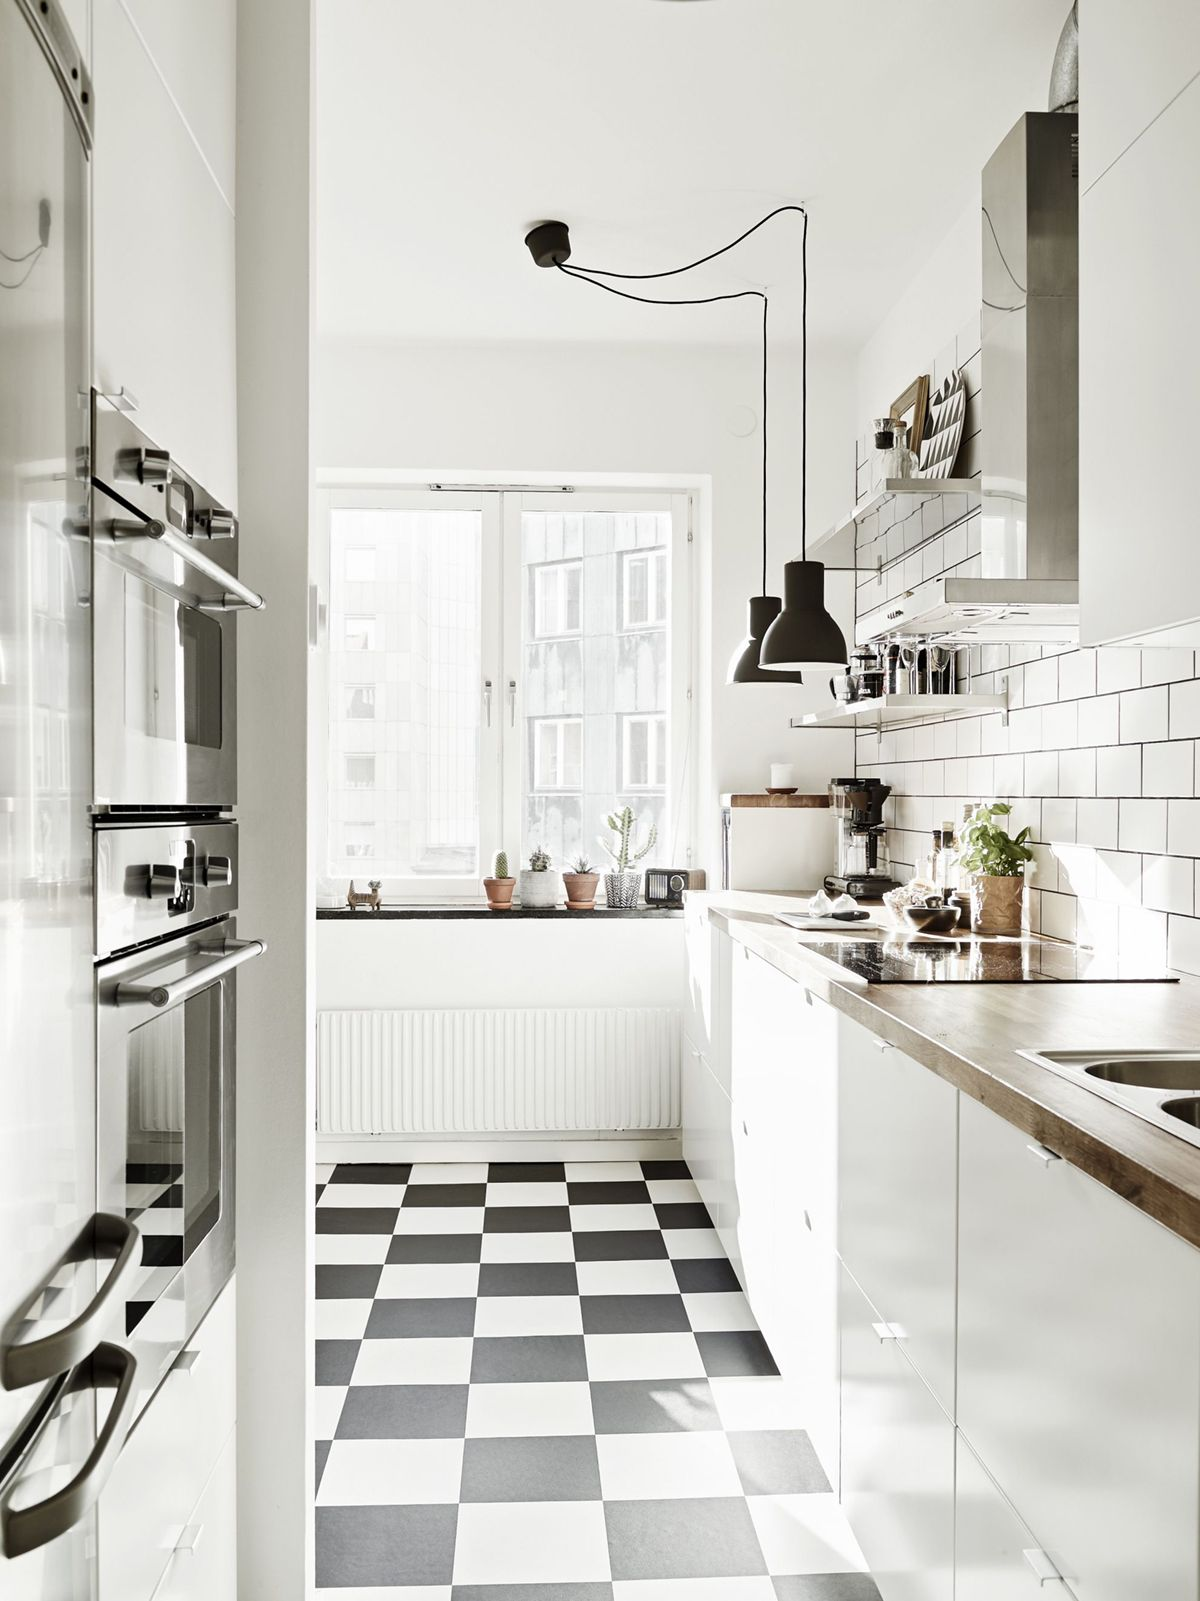 Should We Do Black White Checkerboard Floors In Our Basement White Tile Kitchen Floor White Kitchen Floor Kitchen Flooring